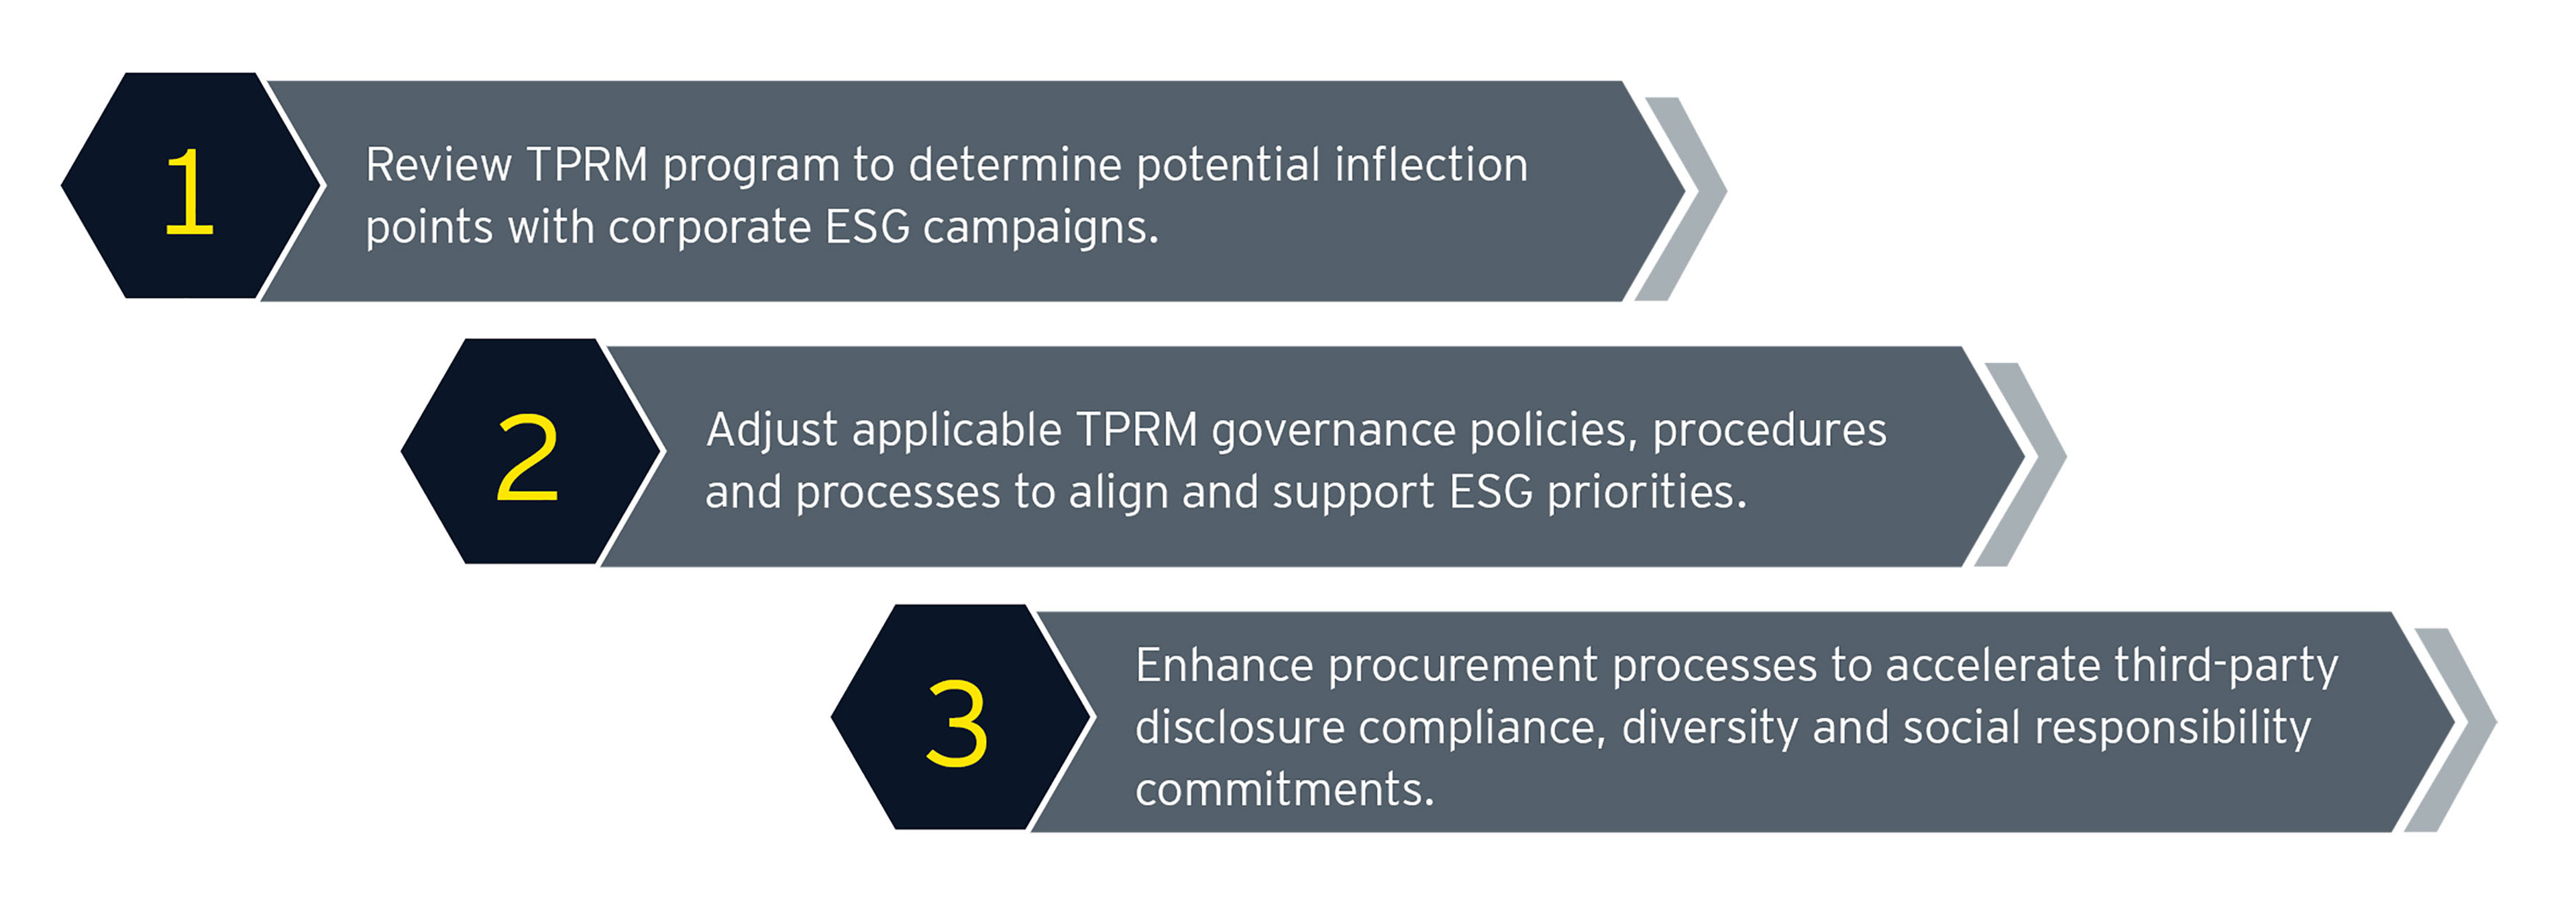 Graphic of TPRM program to facilitate alignment and integration